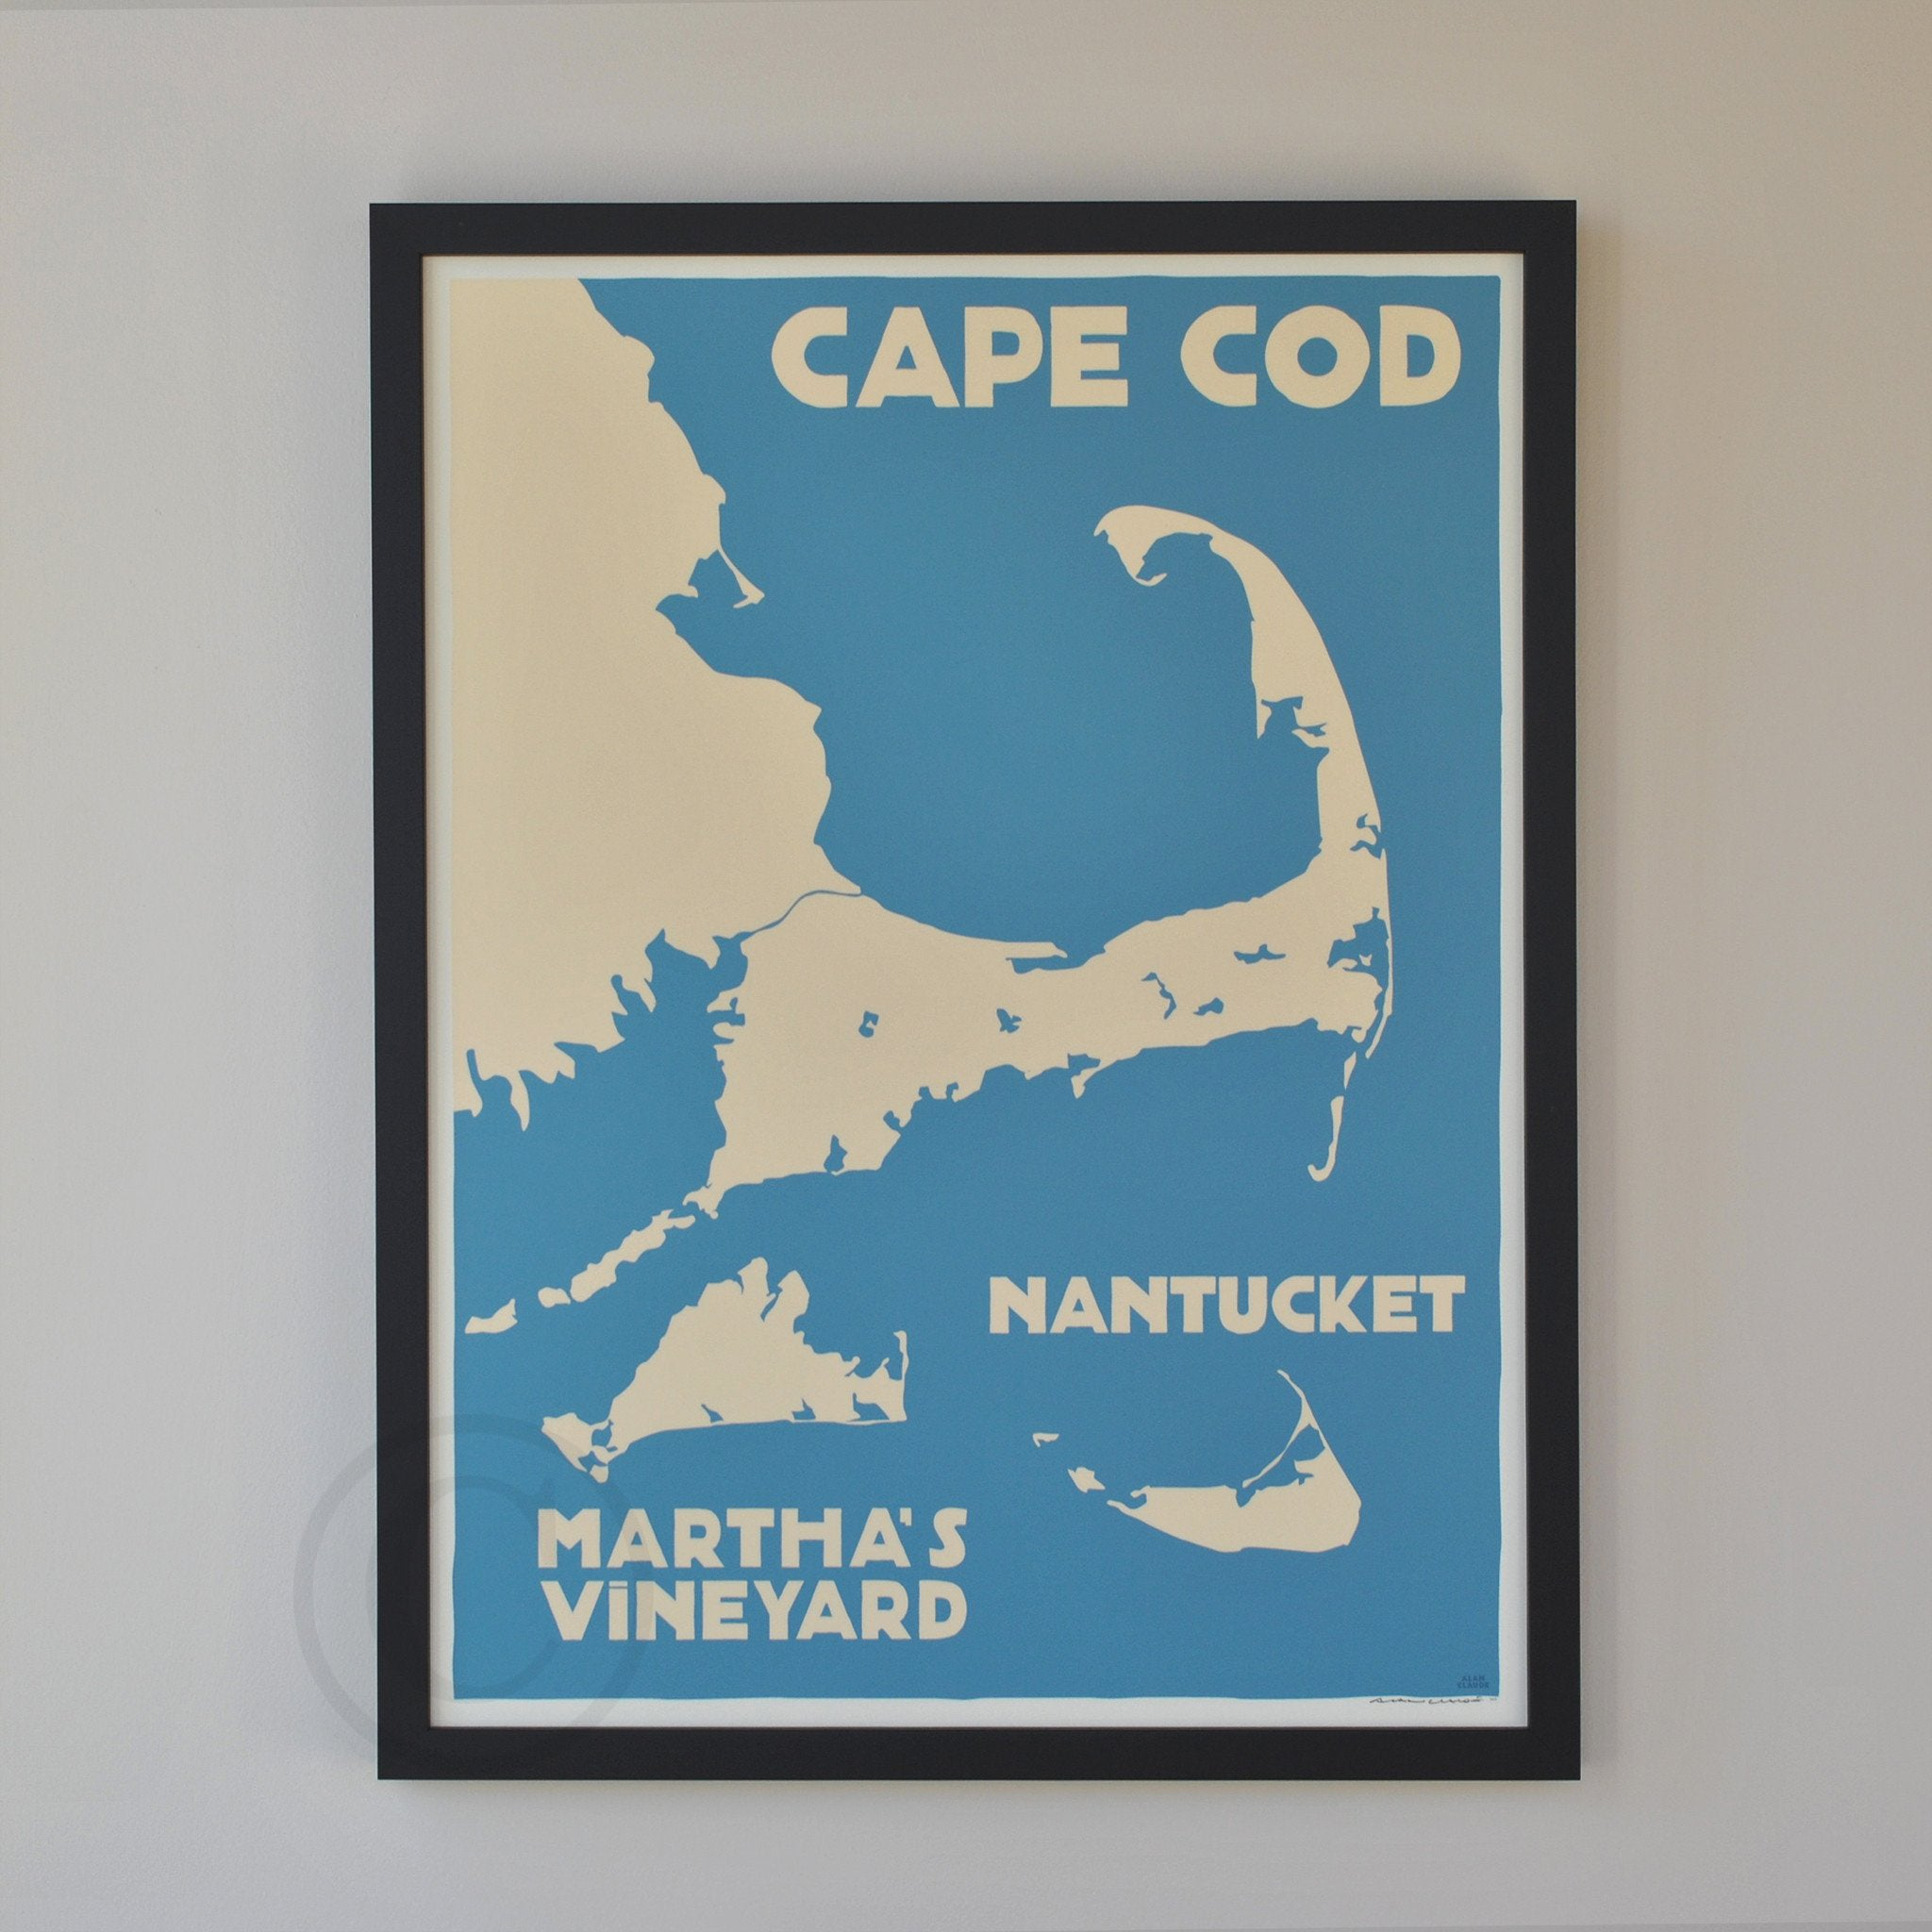 "Cape Cod, Martha's Vineyard, Nantucket Map Art Print 18"" x 24"" Framed Travel Poster - Massachusetts"